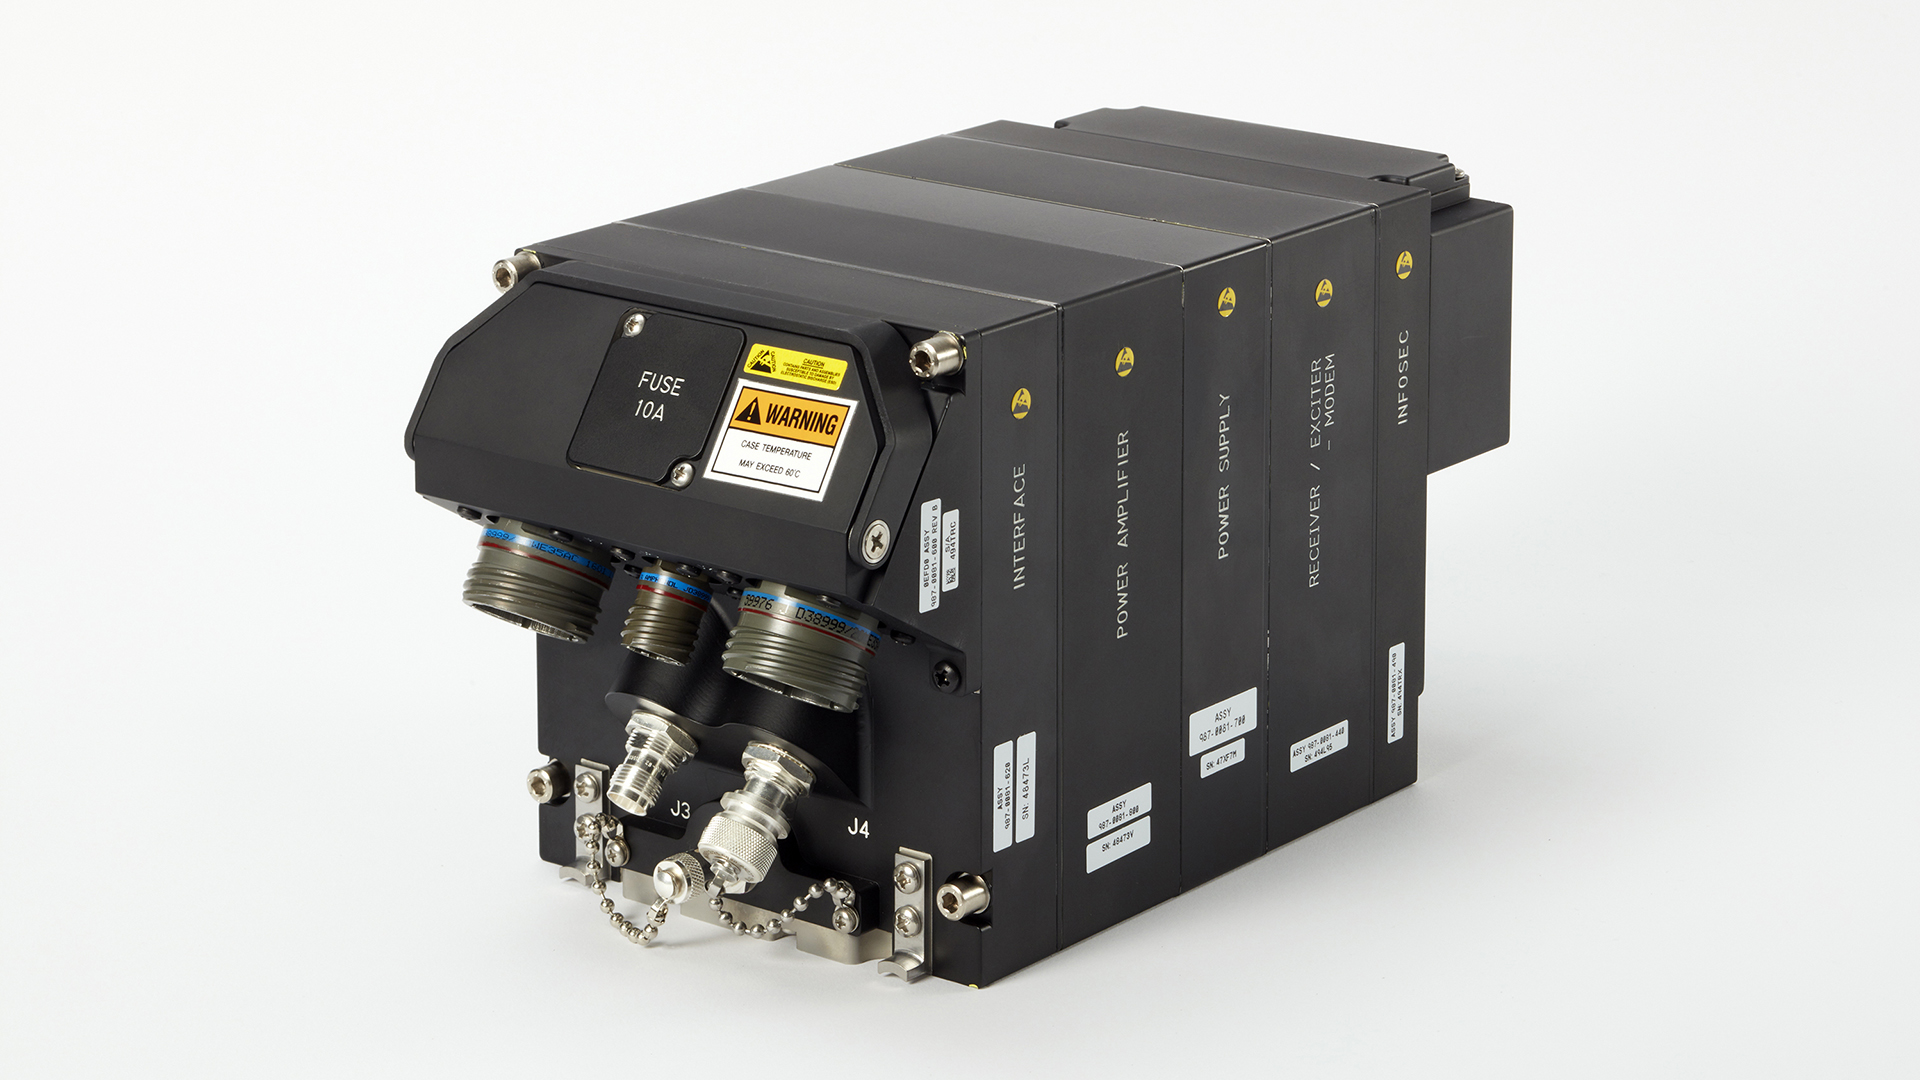 Image of the ARC-210 Gen 5 box